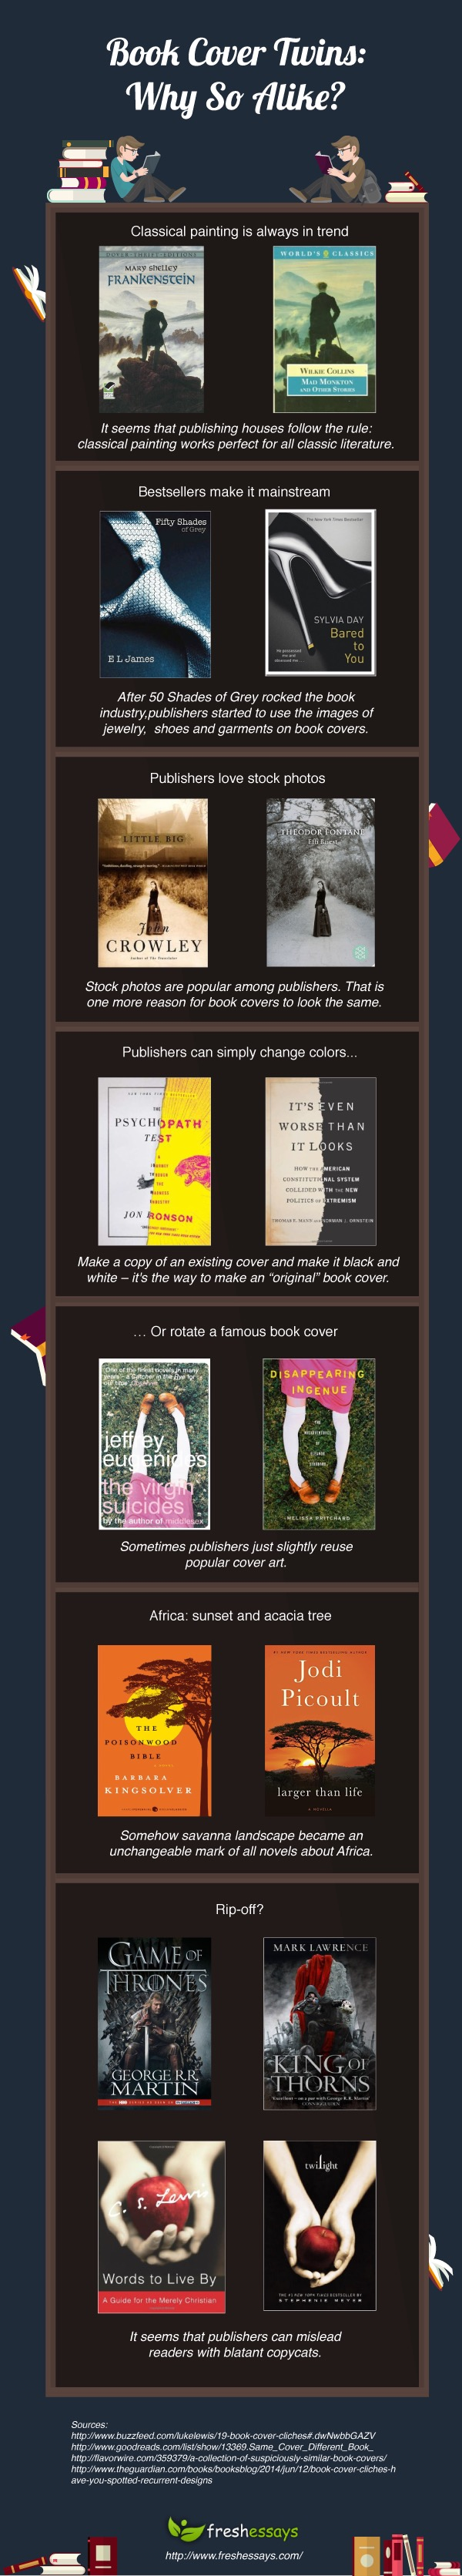 The new infographic shows side by sidethe book covers that are strikingly similar